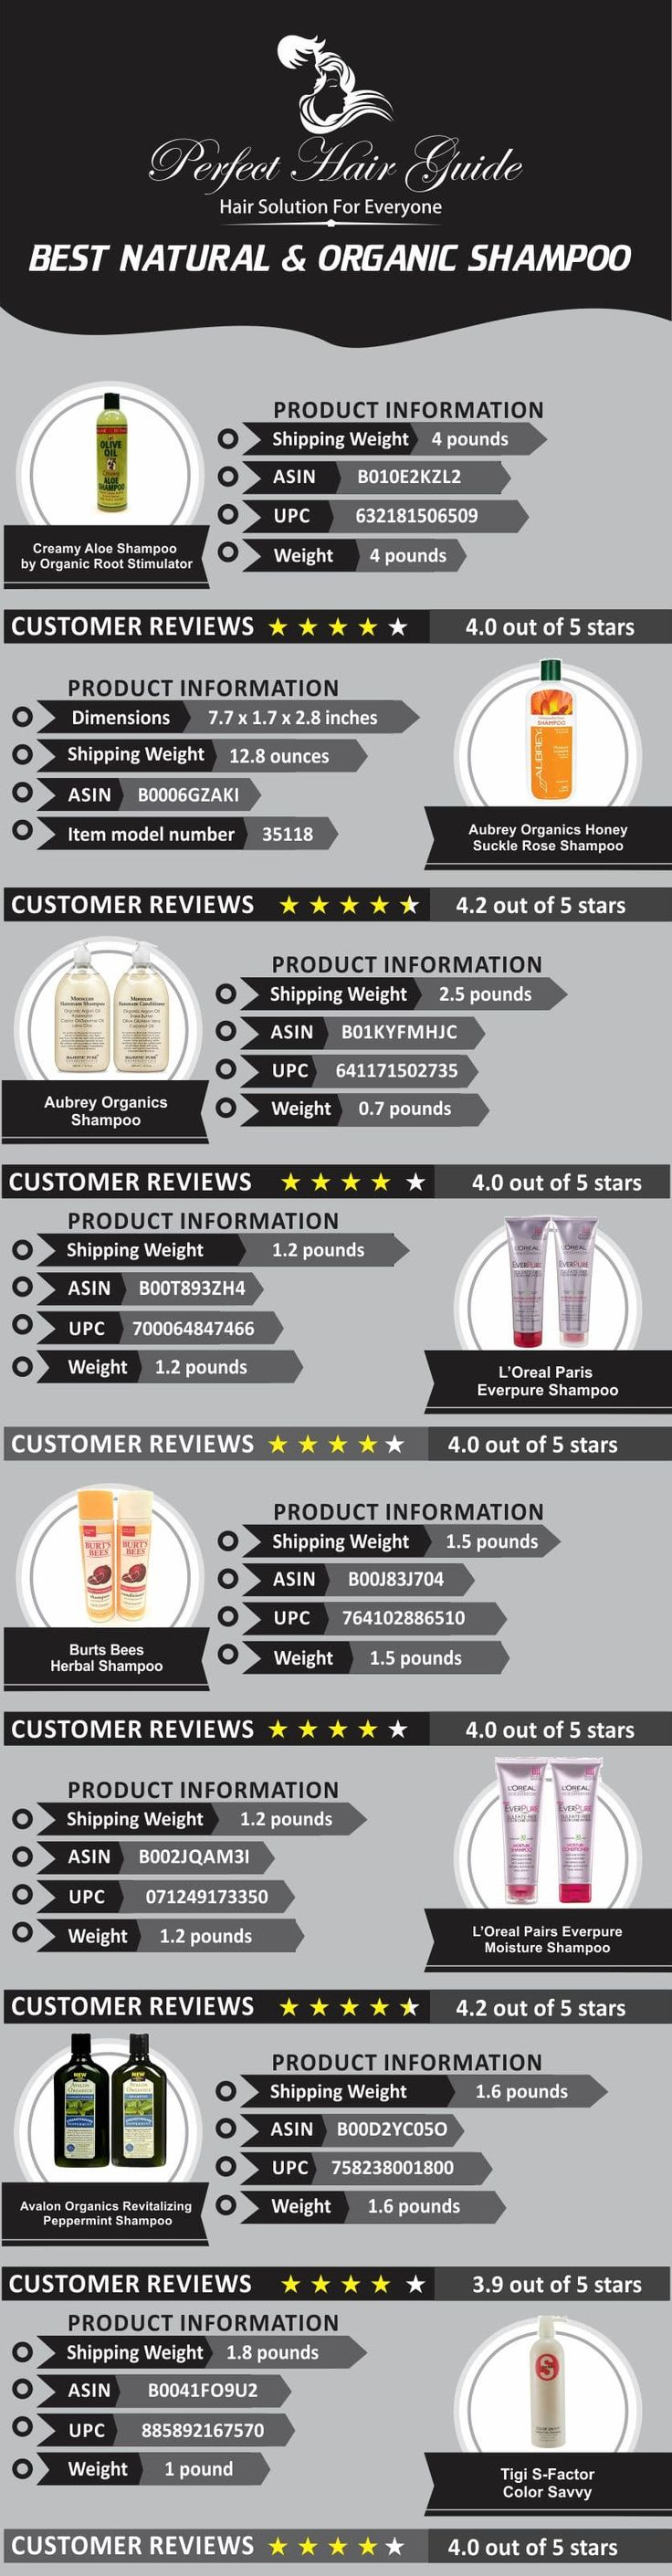 #Best #Natural & #Organic #Shampoos to #protect your #hair as well as make your hair #stronger & #healthier at http://www.perfecthairguide.com/best-organic-natural-shampoo-reviews/